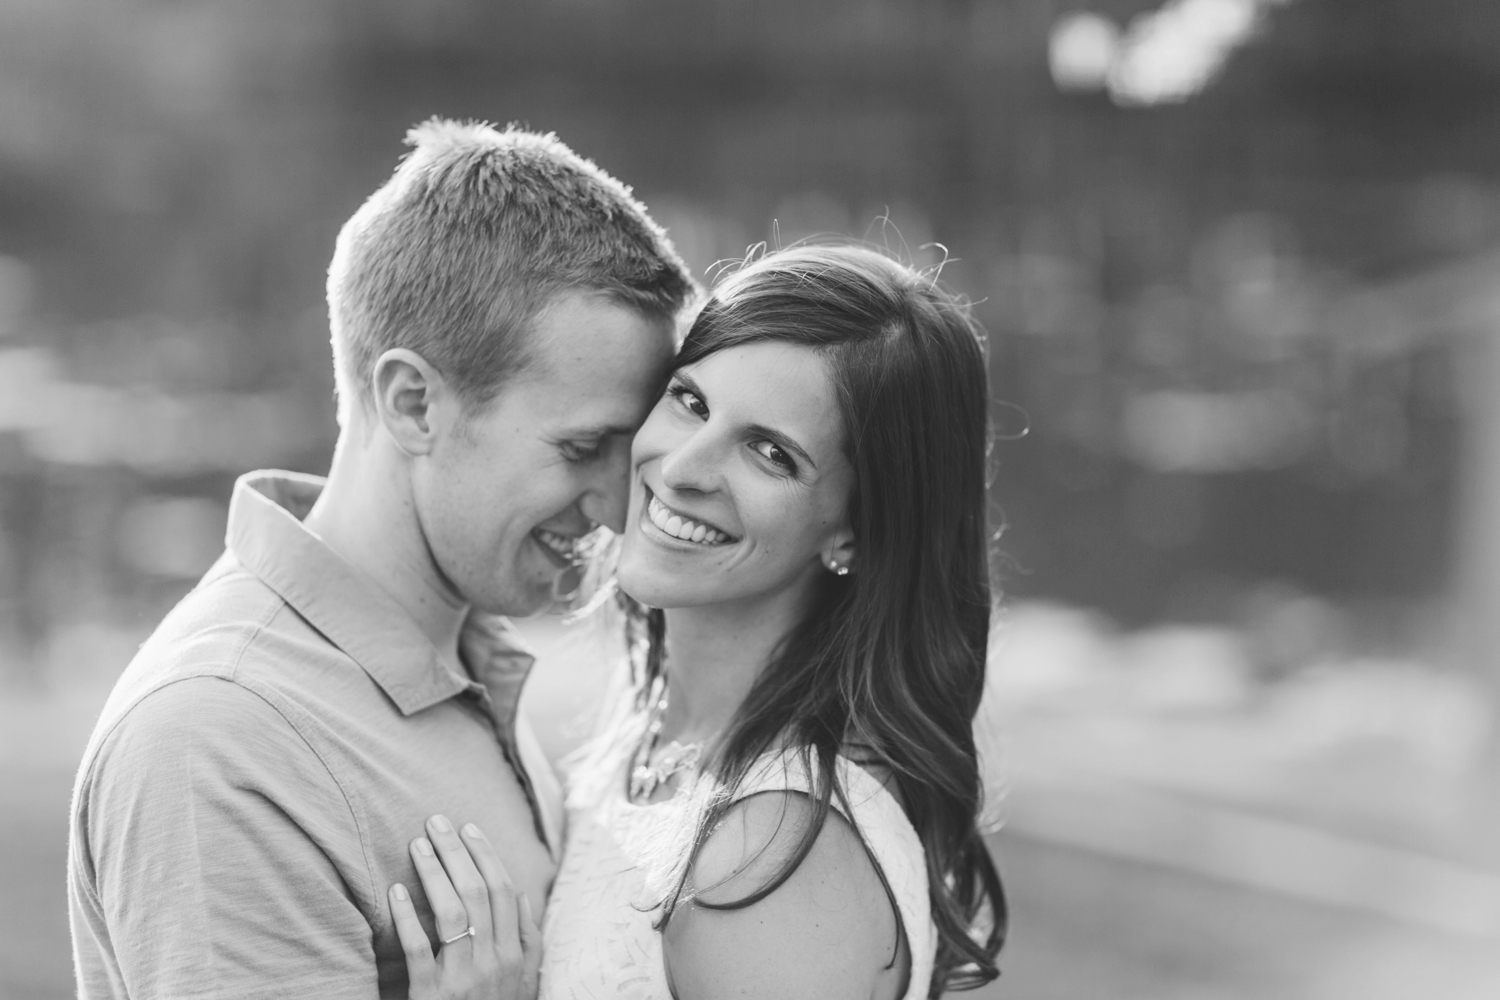 indianapolis_indiana_wedding_photographer_eagle_creek_engagement_chloe_luka_photography_6362.jpg